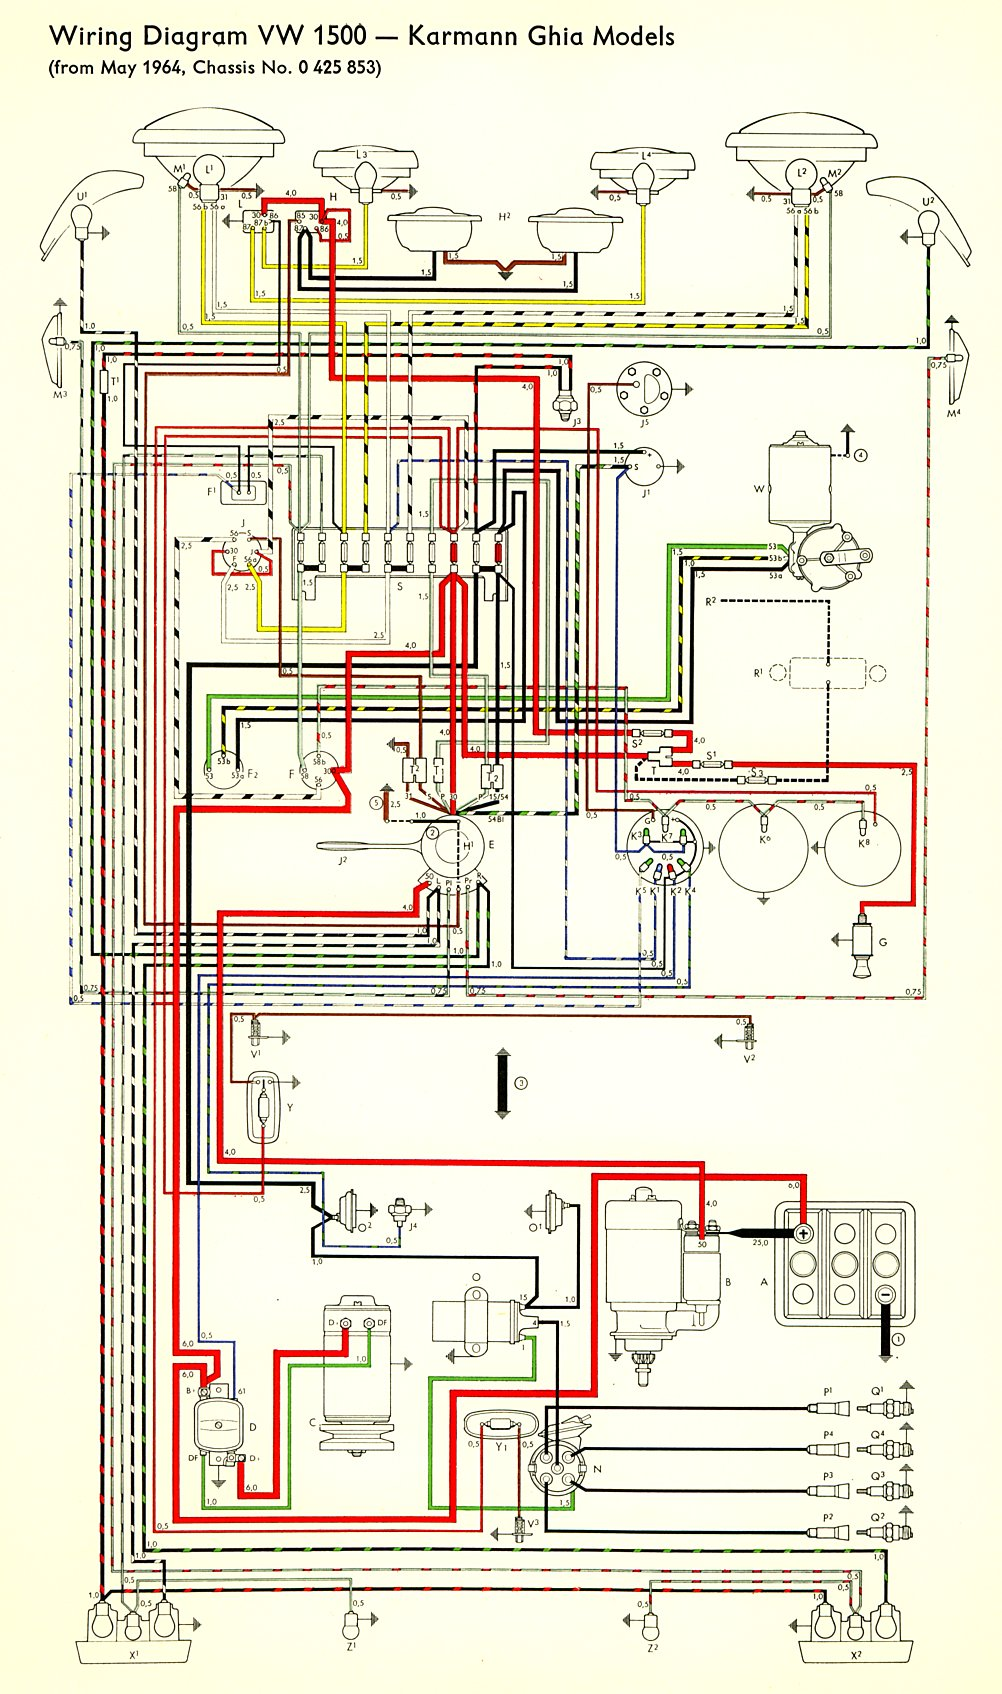 1964 volkswagen wiring diagram  1964  free engine image 1963 VW Wiring Diagram 1963 VW Wiring Diagram